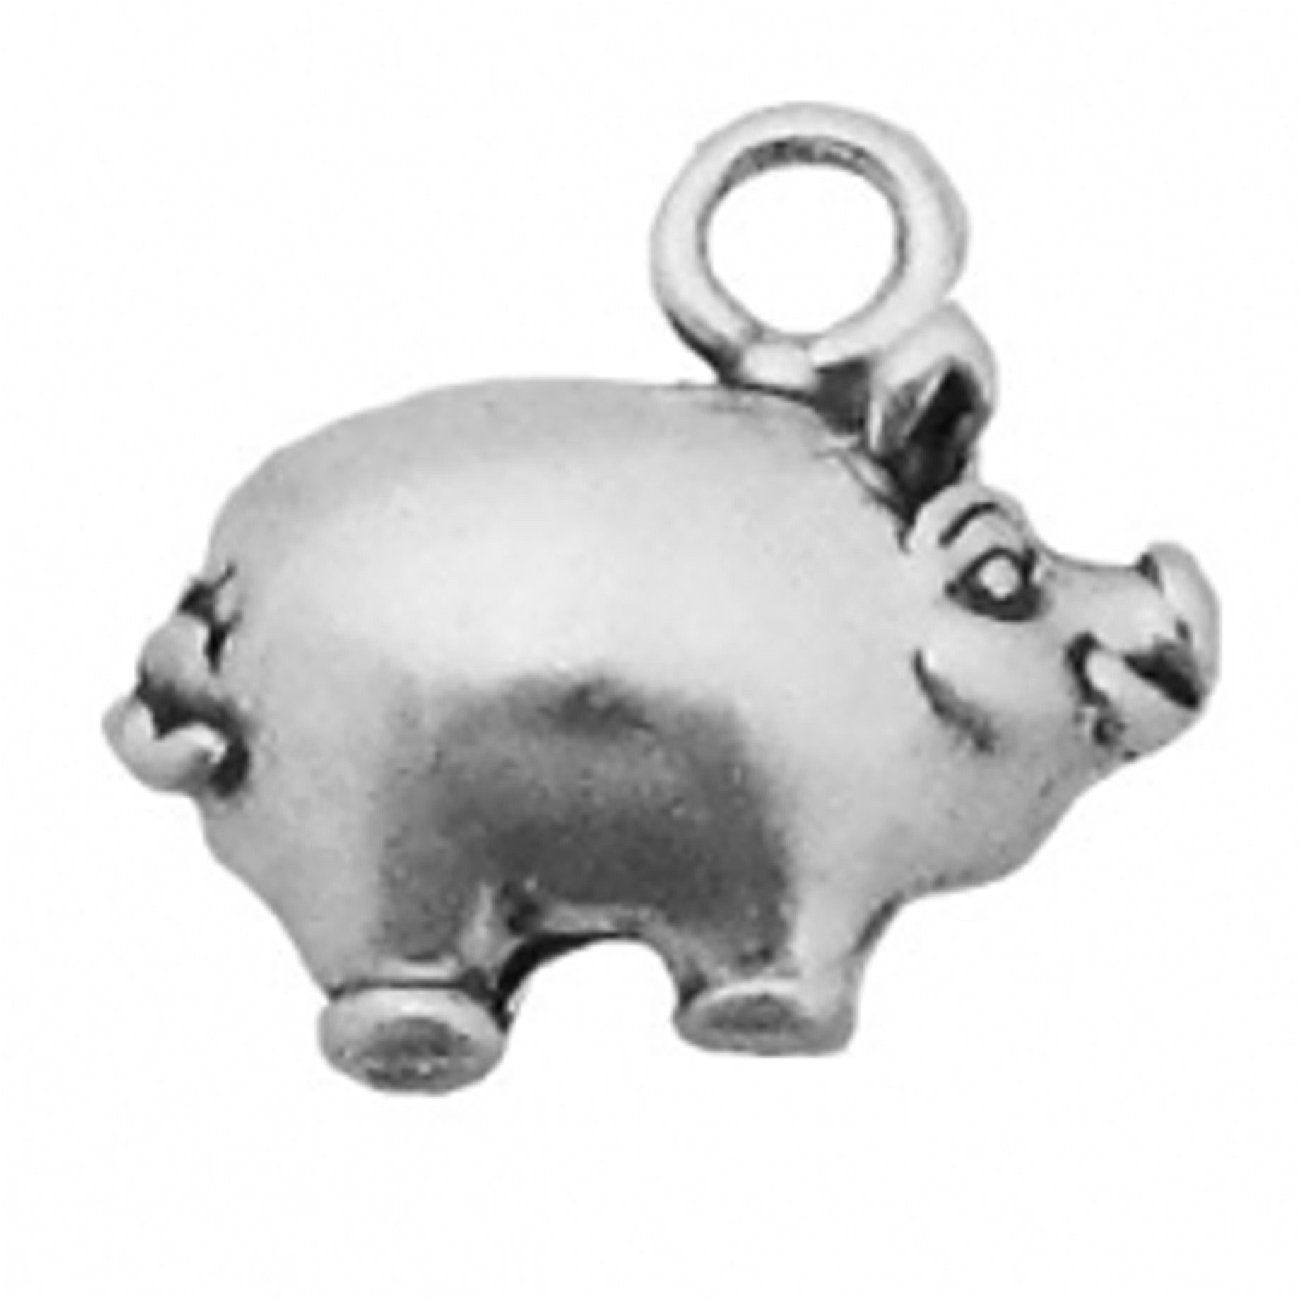 Sterling Silver 7 4.5mm Charm Bracelet With Attached 3D Piggy Bank Charm